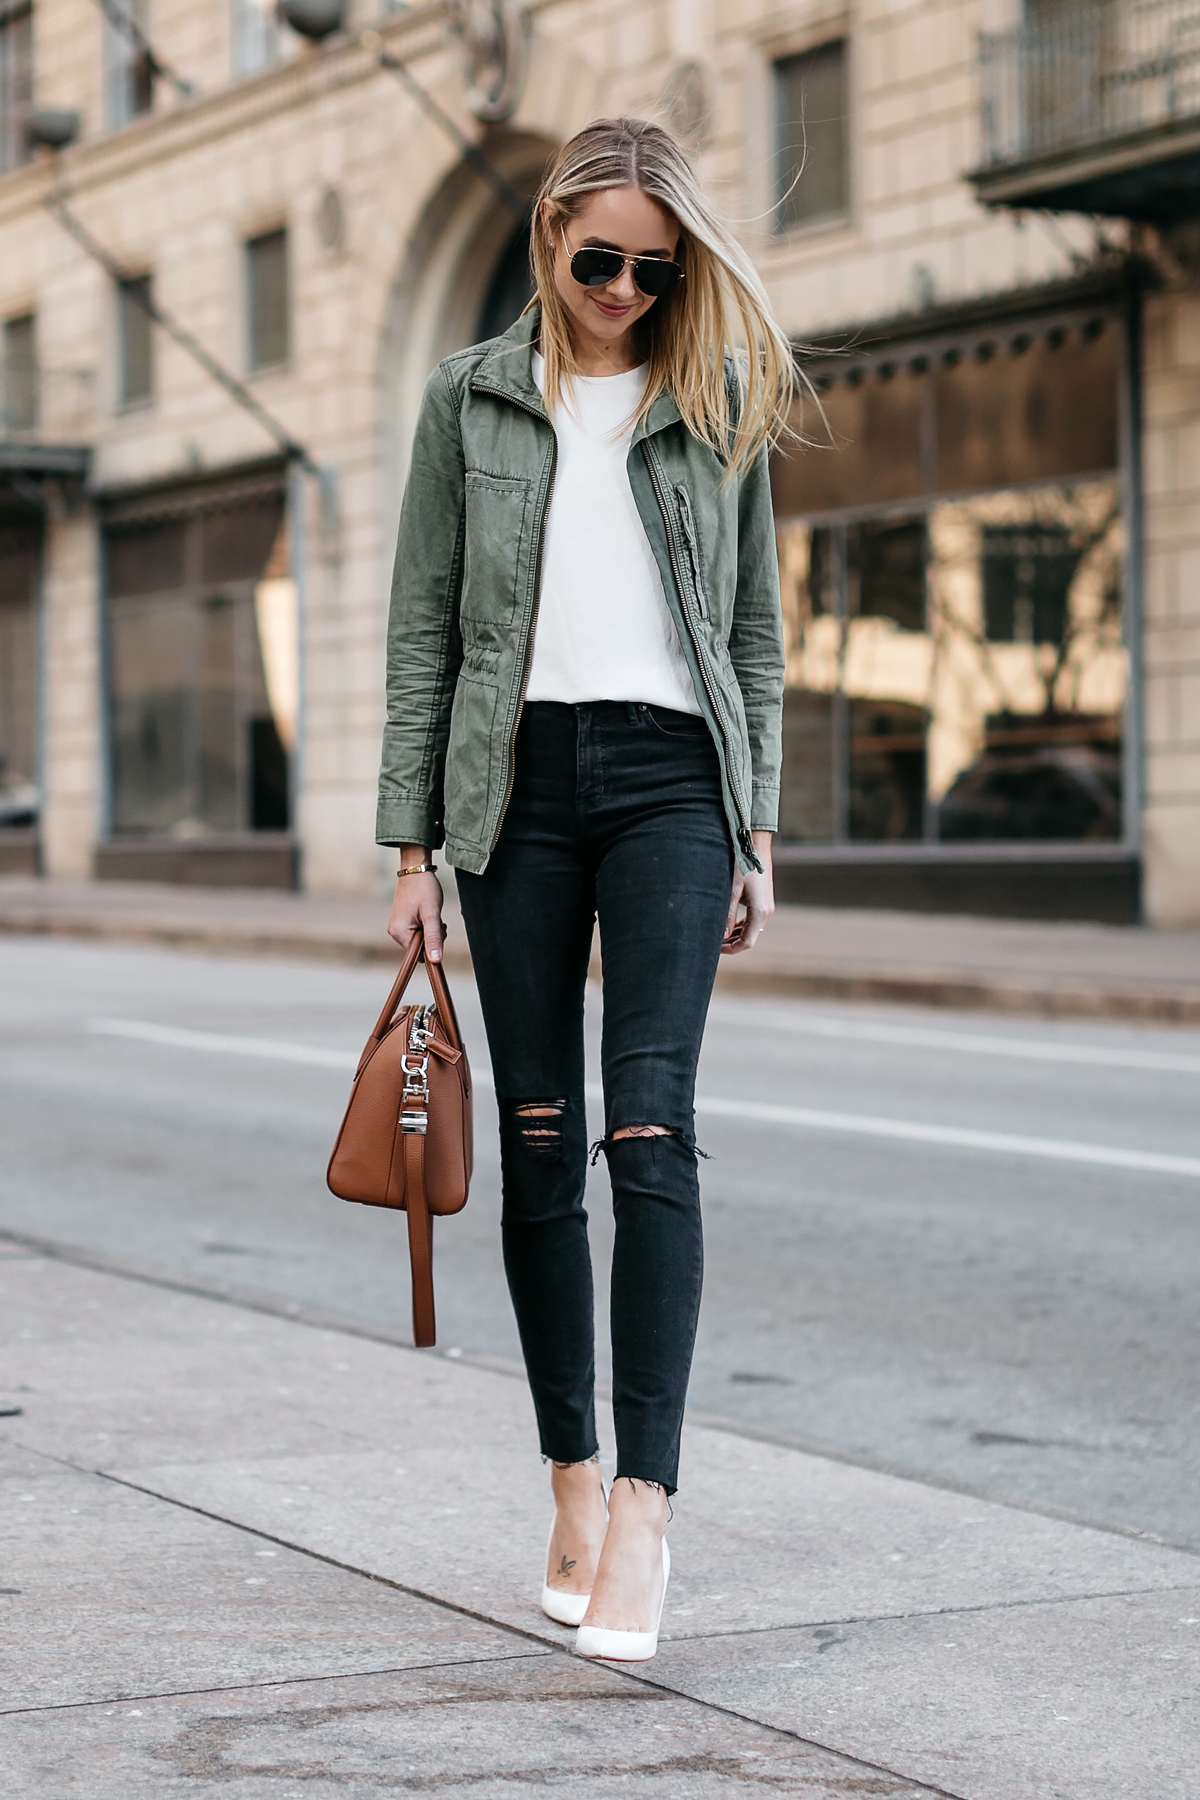 Blonde Woman Wearing Madewell Fleet Jacket Green Jacket White Tank Madewell Black Ripped Skinny Jeans Christian Louboutin White Pumps Givenchy Antigona Small Satchel Cognac Celine Aviator Sunglasses Fashion Jackson Dallas Blogger Fashion Blogger Street Style